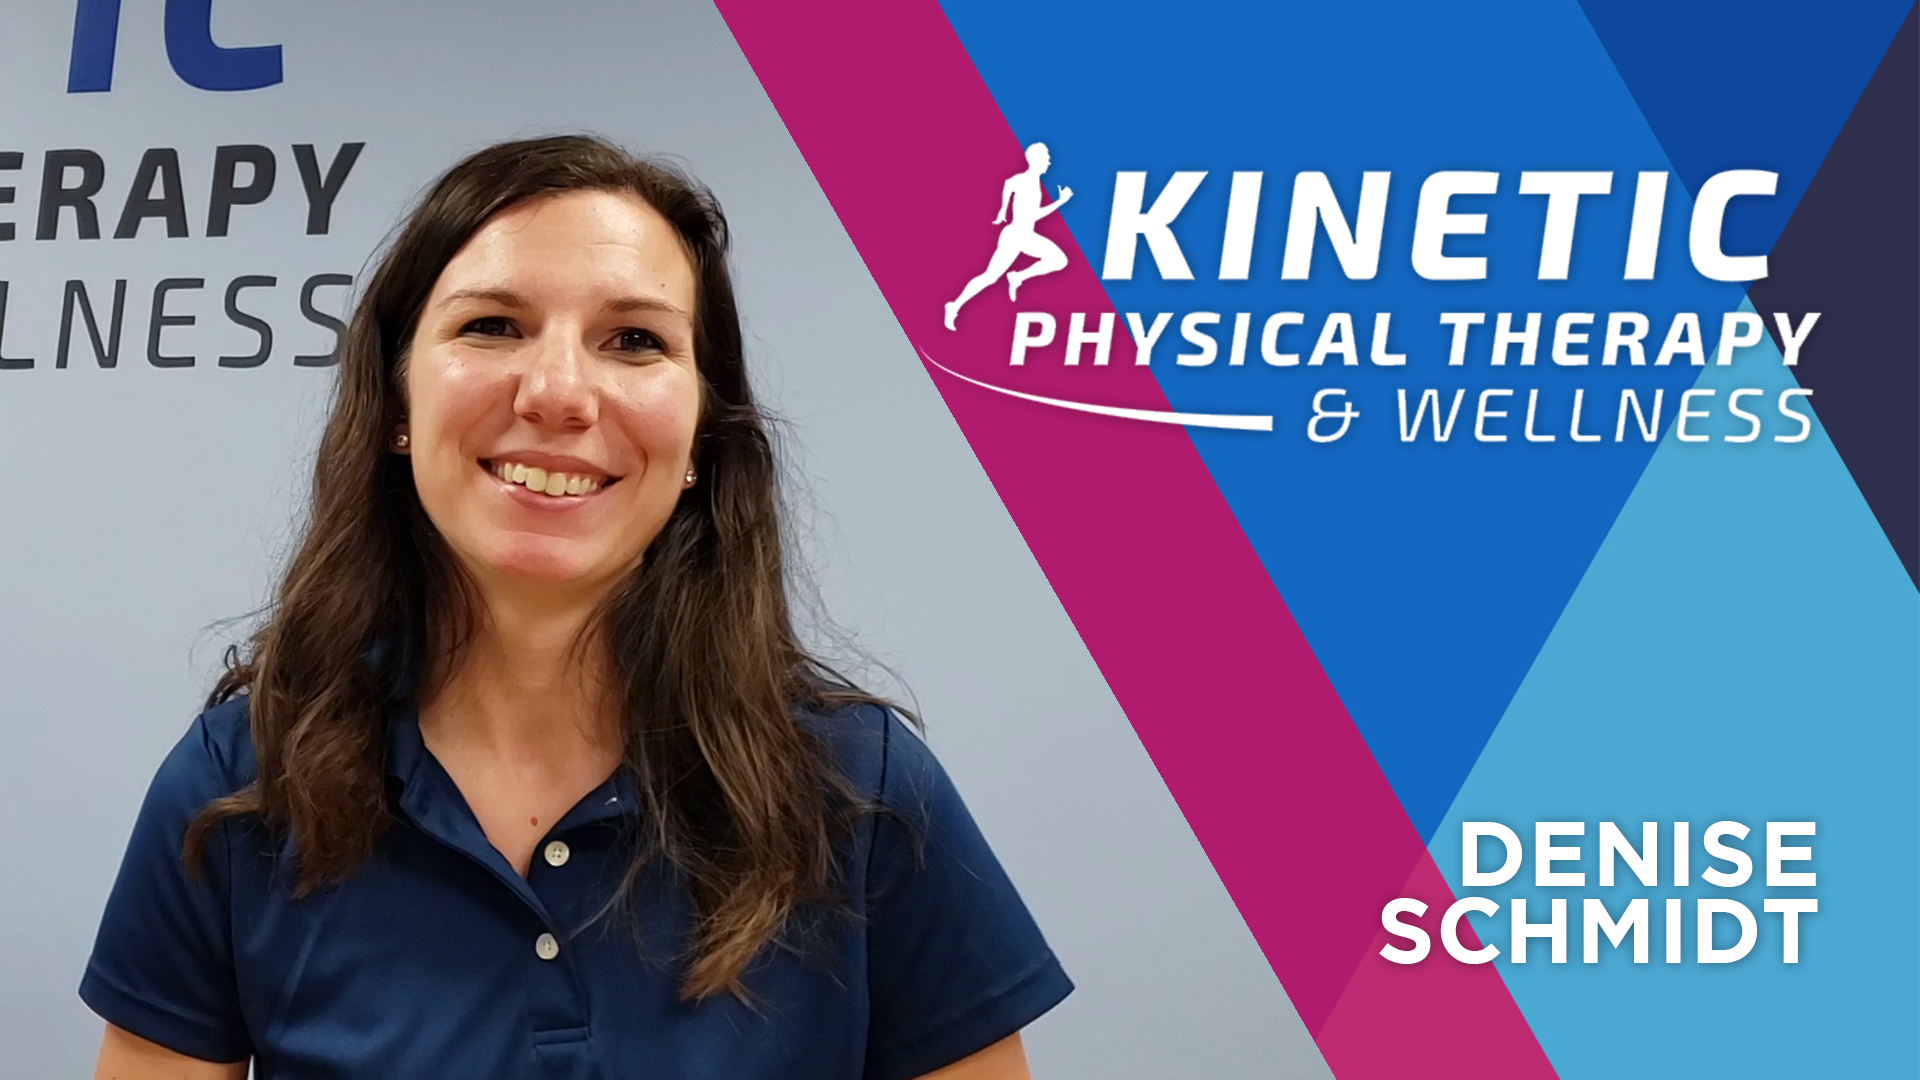 kinetic physical therapy team member